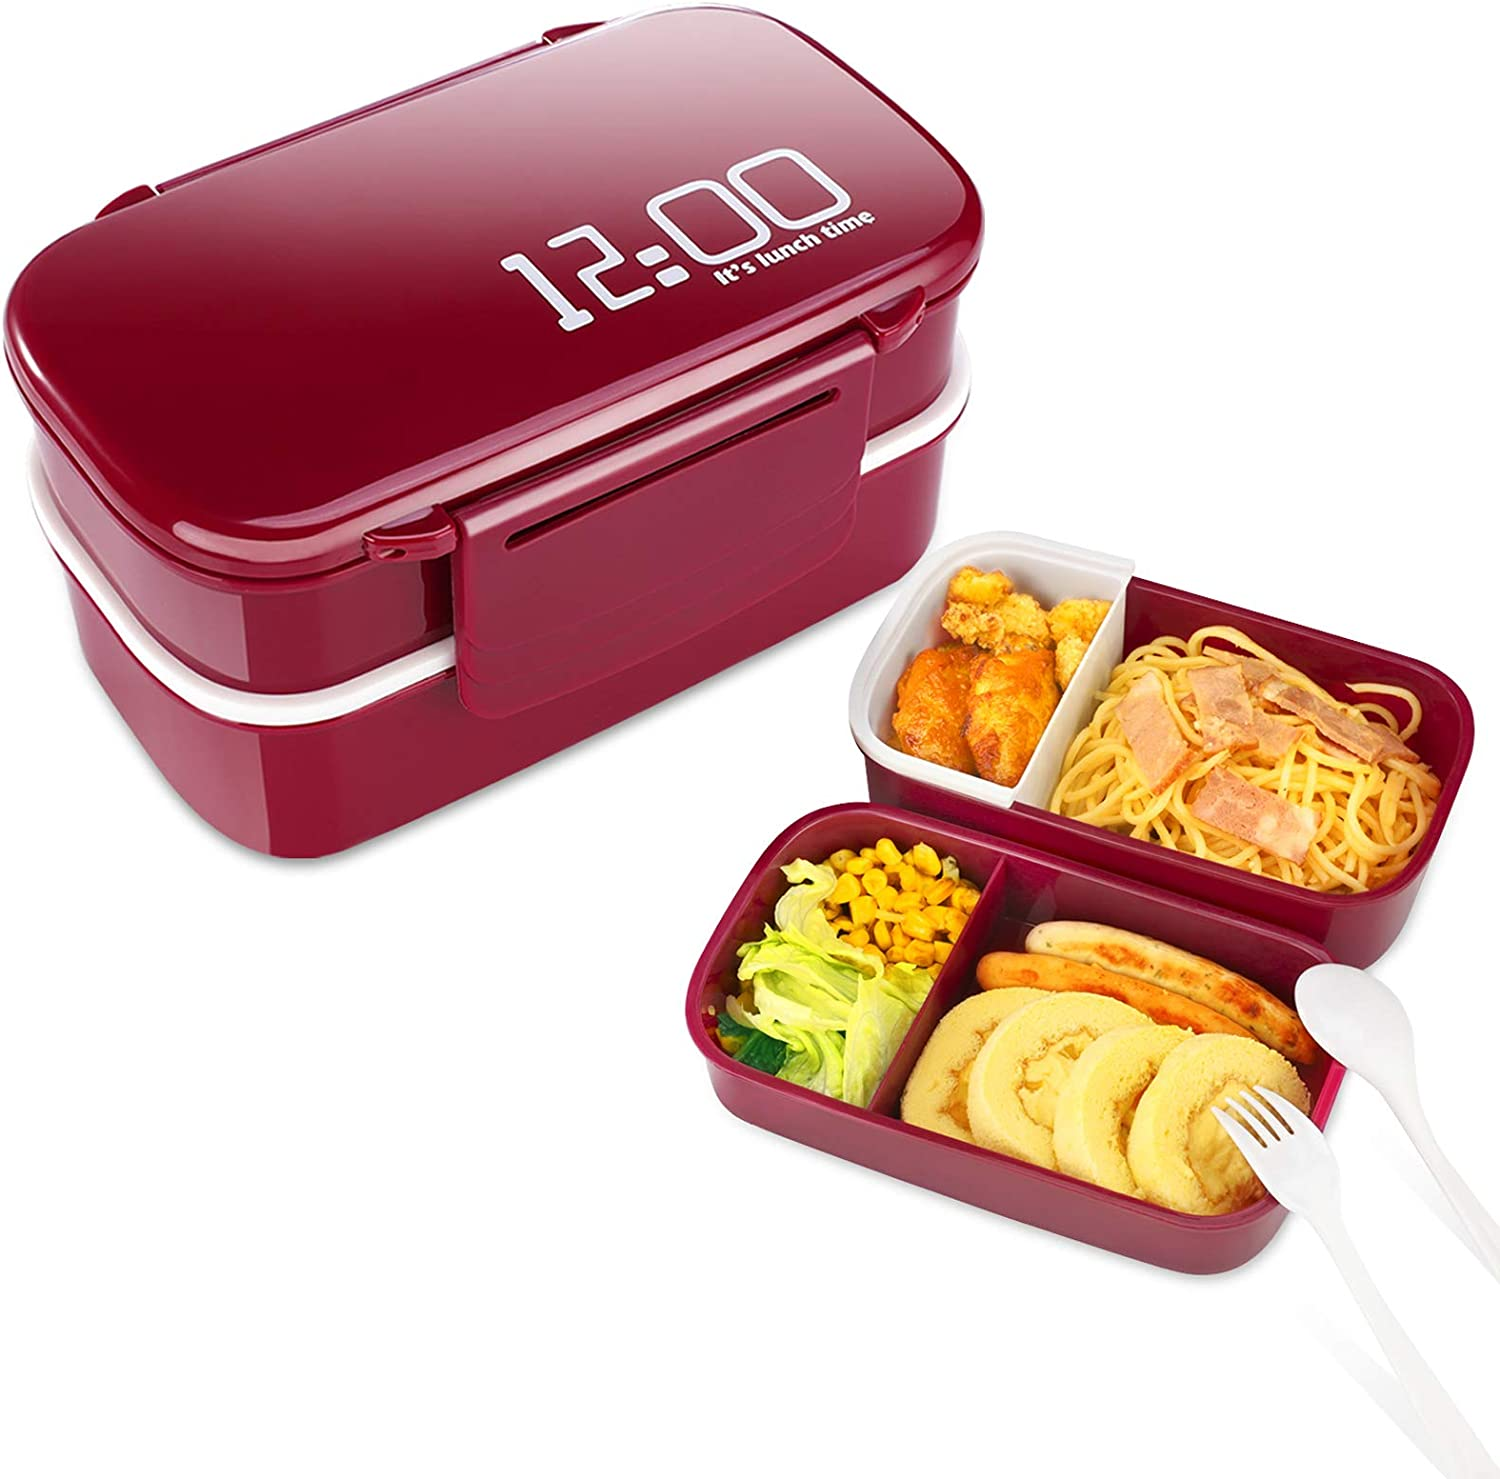 Supplim Lunch Box for Men Women 2-In-1 Compartment Kids Bento Box Reusable Adult Lunch Food Container With Spoon & Fork